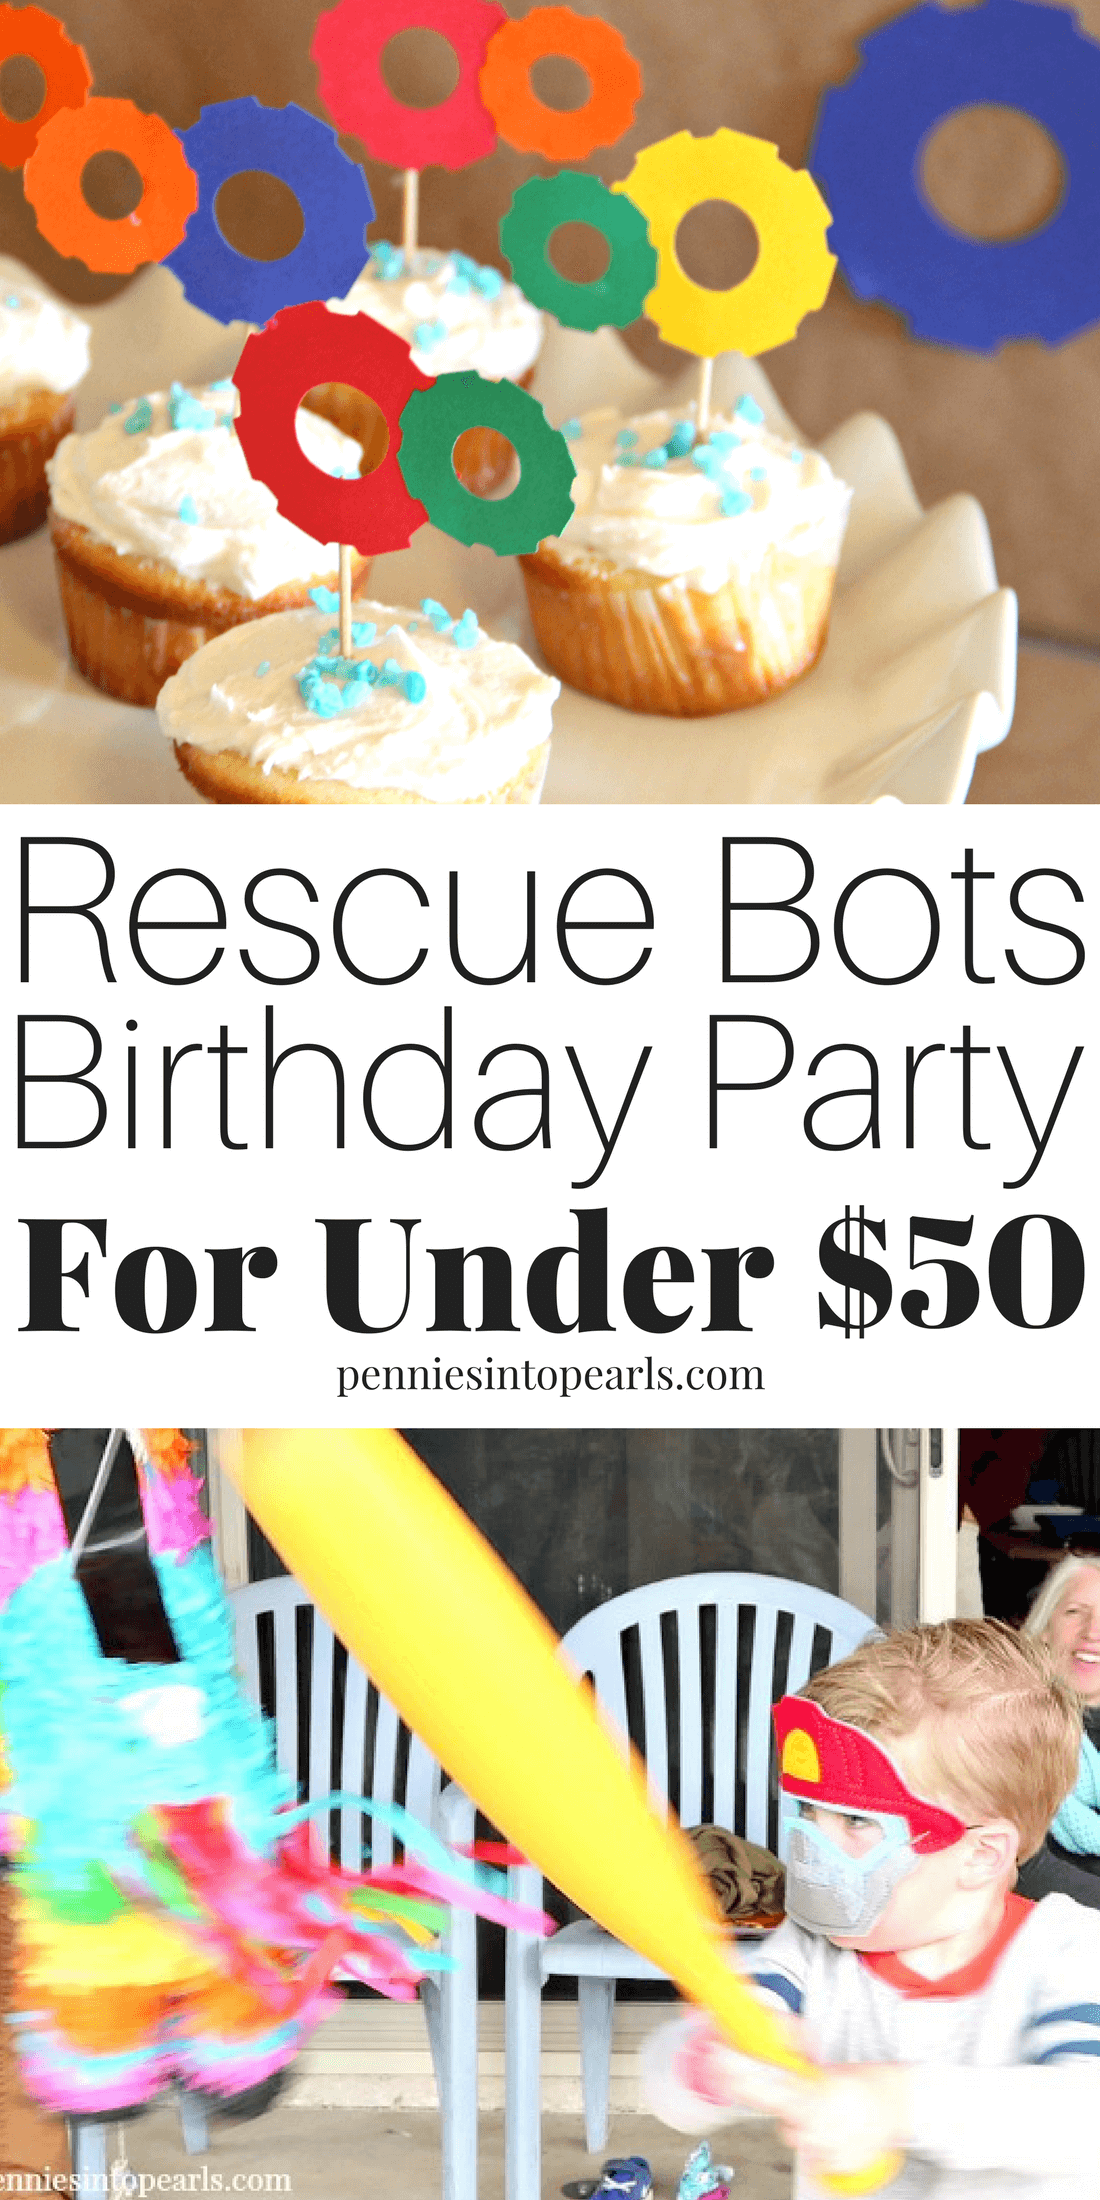 Rescue Bots Birthday Party Ideas for Under $50! - Cheap Party Ideas for Boys #partybudgeting